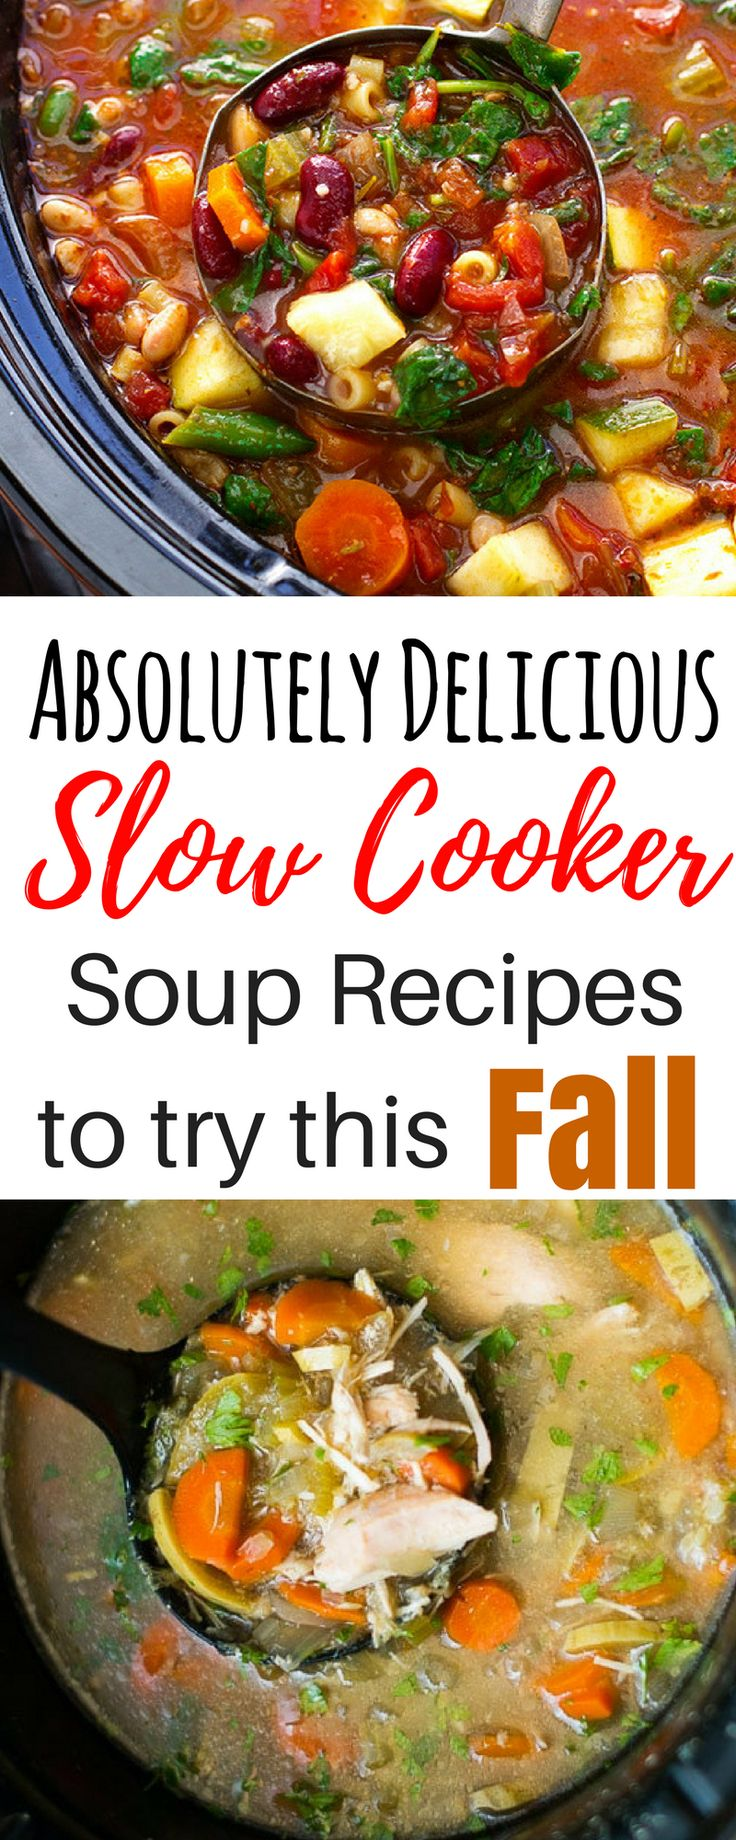 These 8 slow cooker soup recipes are all so healthy and delicious! I'm so glad I found this roundup with recipes for vegetarian tomato detox, chicken noodle, beef, potato, bean, and even easy Mexican soup! These awesome fall Crockpot recipes are THE BEST easy, healthy, and affordable options for your busy life! #slowcookersoups #soups #slowcooking #souprecipes